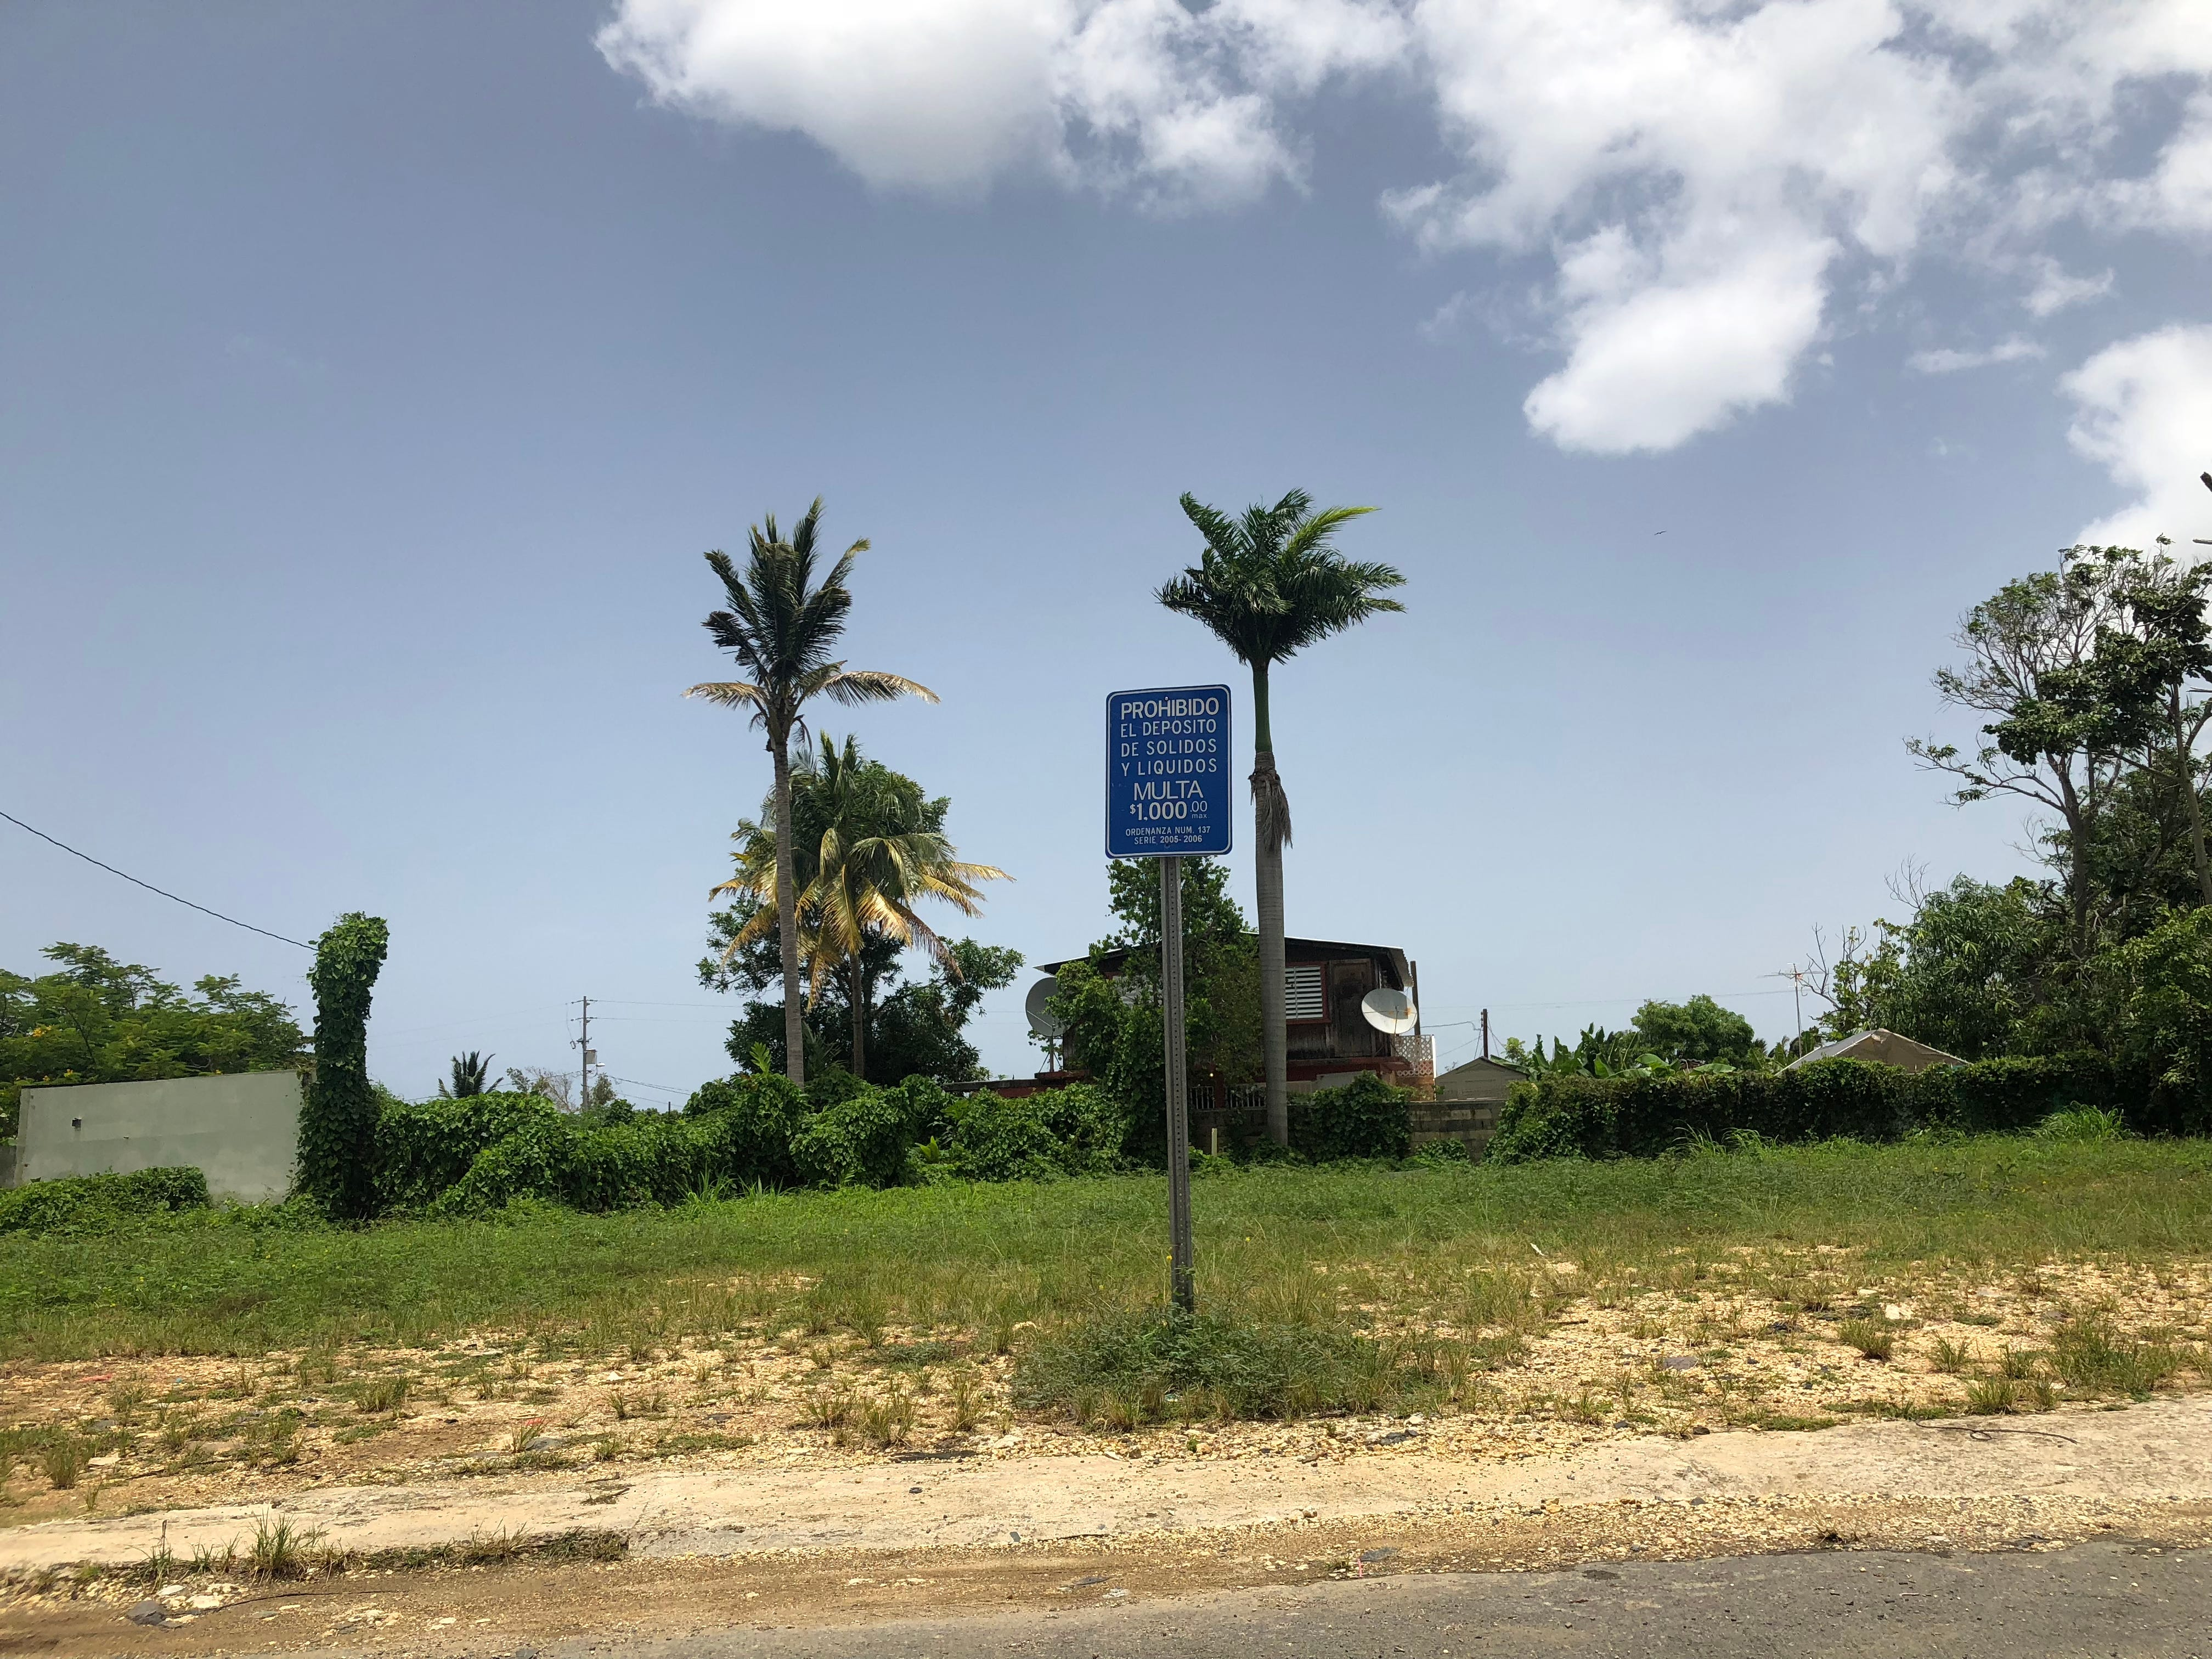 The neighborhood of Vietnam, south of San Juan, is dotted with empty lots such as this one after local officials expropriated over 300 homes in the area.